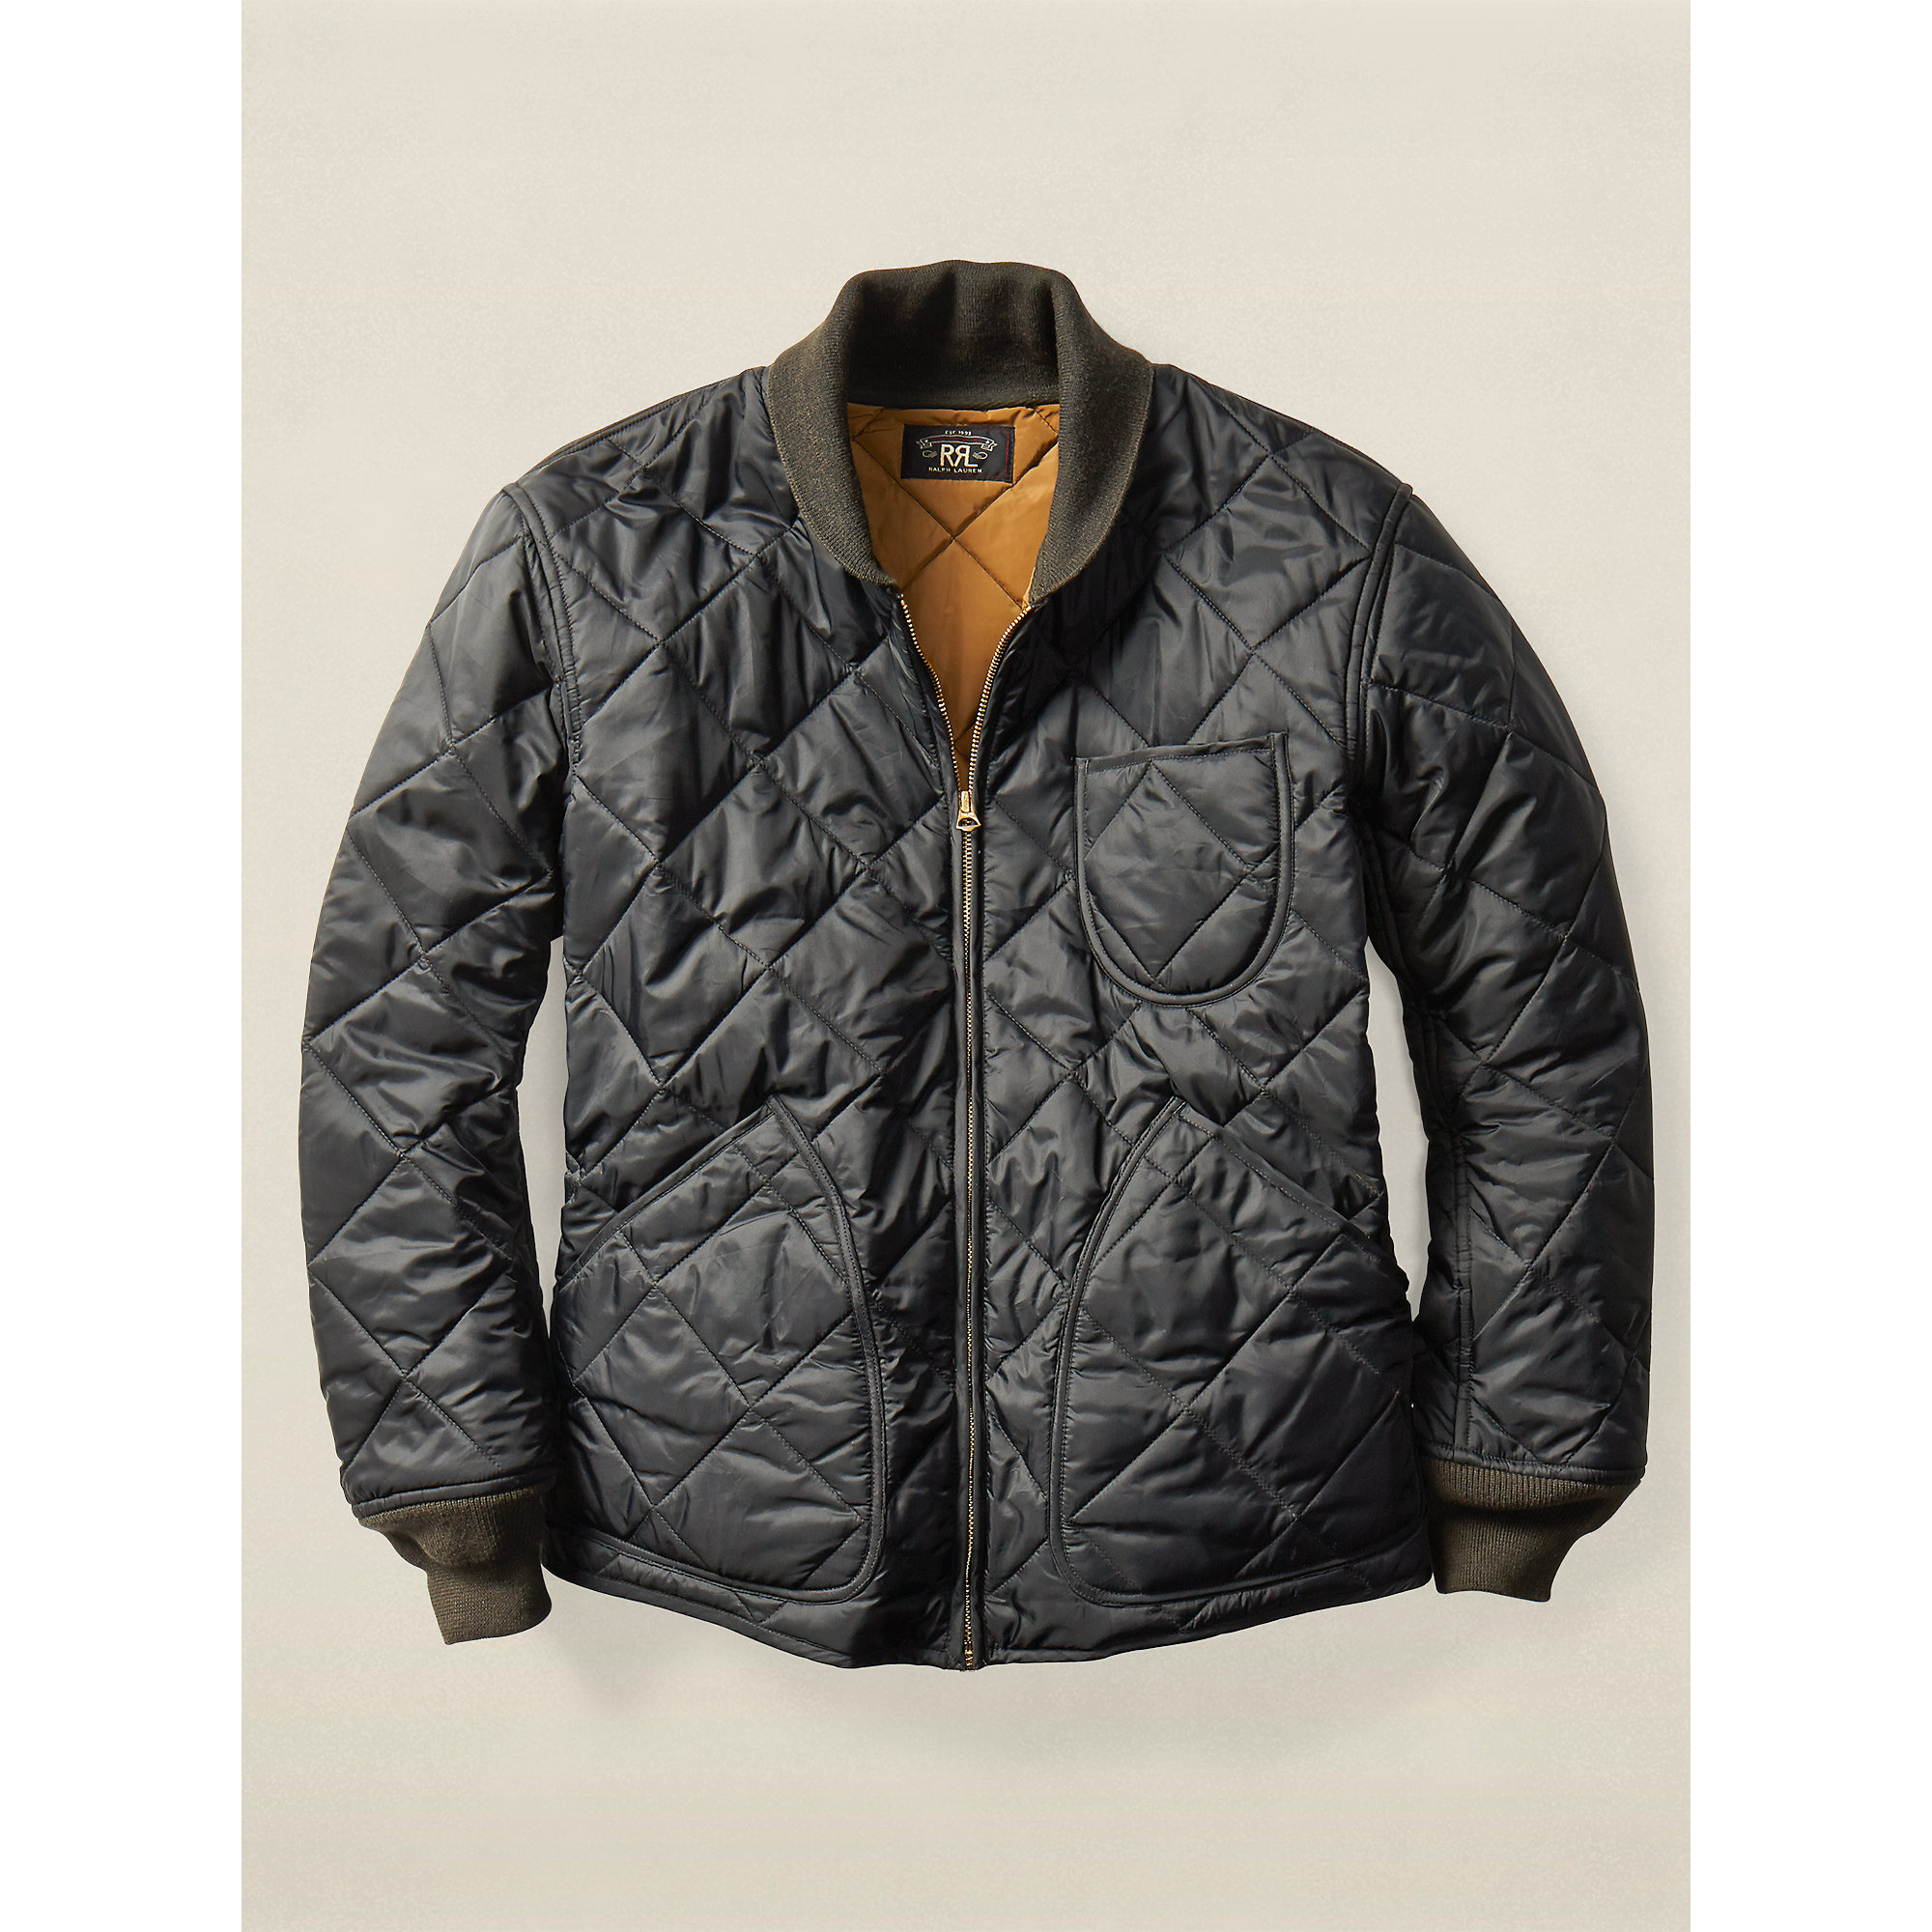 Lyst - Rrl Quilted Liner Jacket in Black for Men : quilted jacket liner - Adamdwight.com